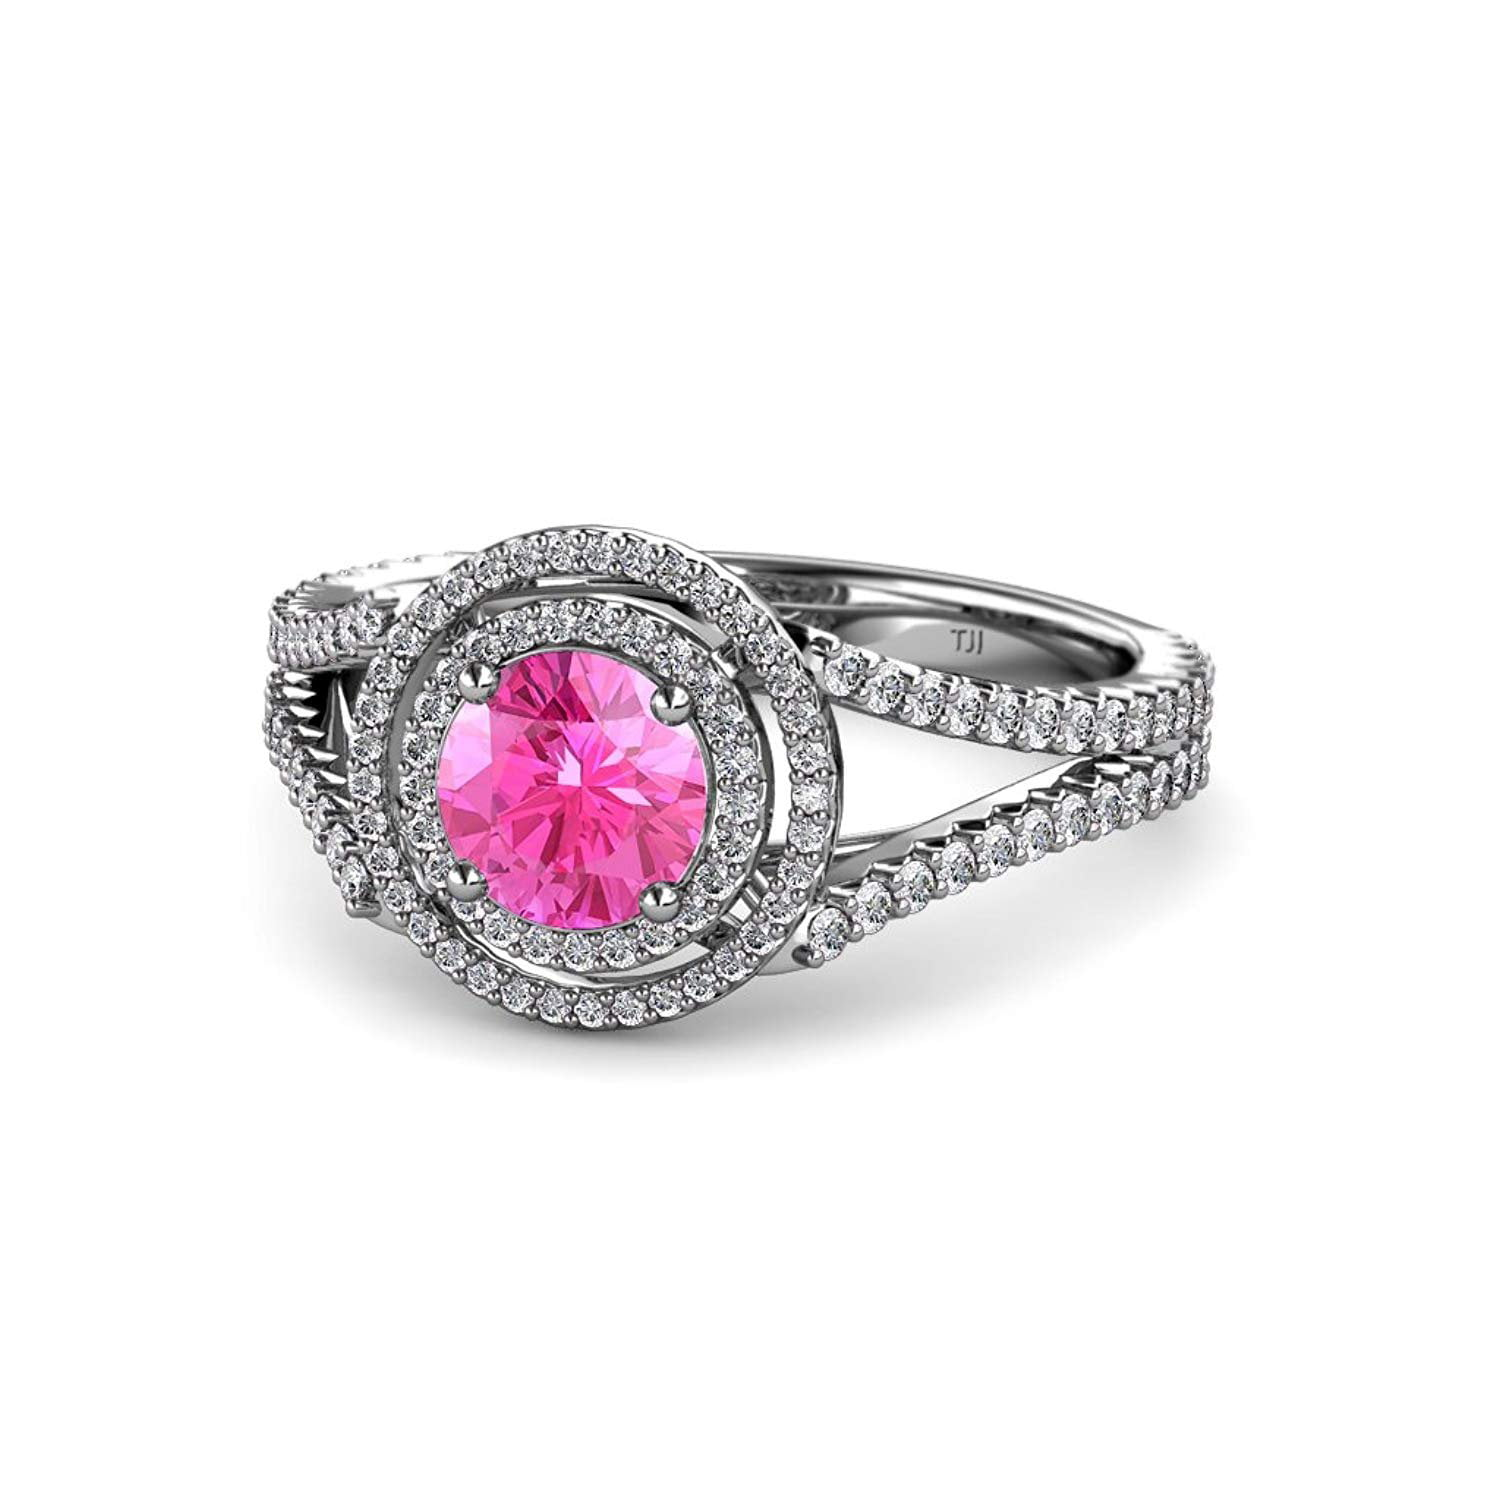 Pink Sapphire and Diamond (SI2-I1, G-H) Double Halo Engagement Ring 1.32 ct tw in 14K White Gold.size 4.5 by TriJewels